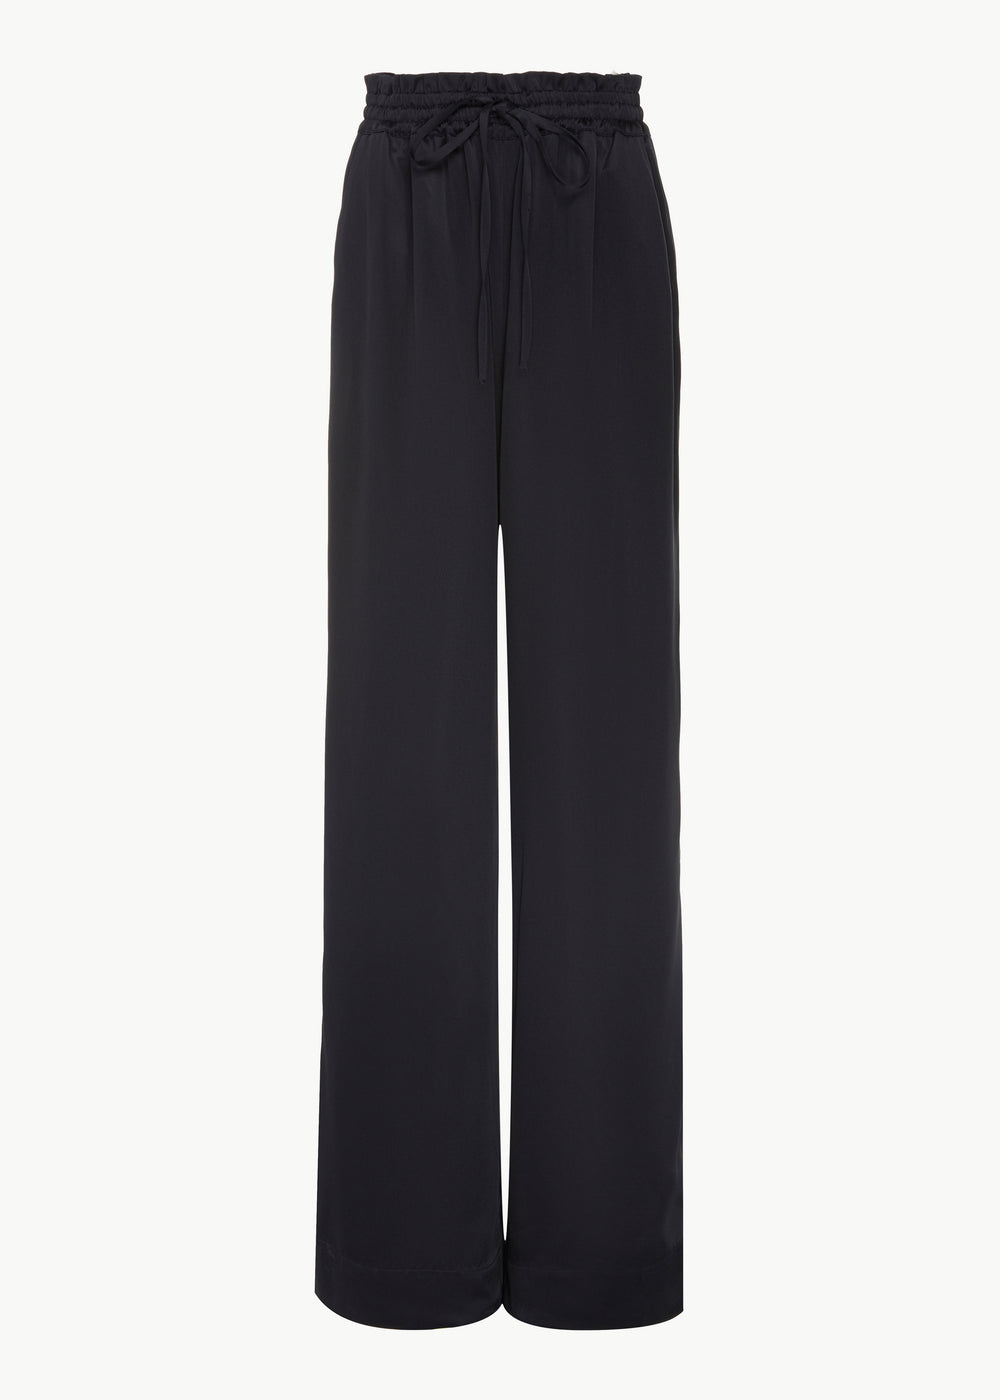 Lounge Pant in Fuji Viscose - Navy - CO